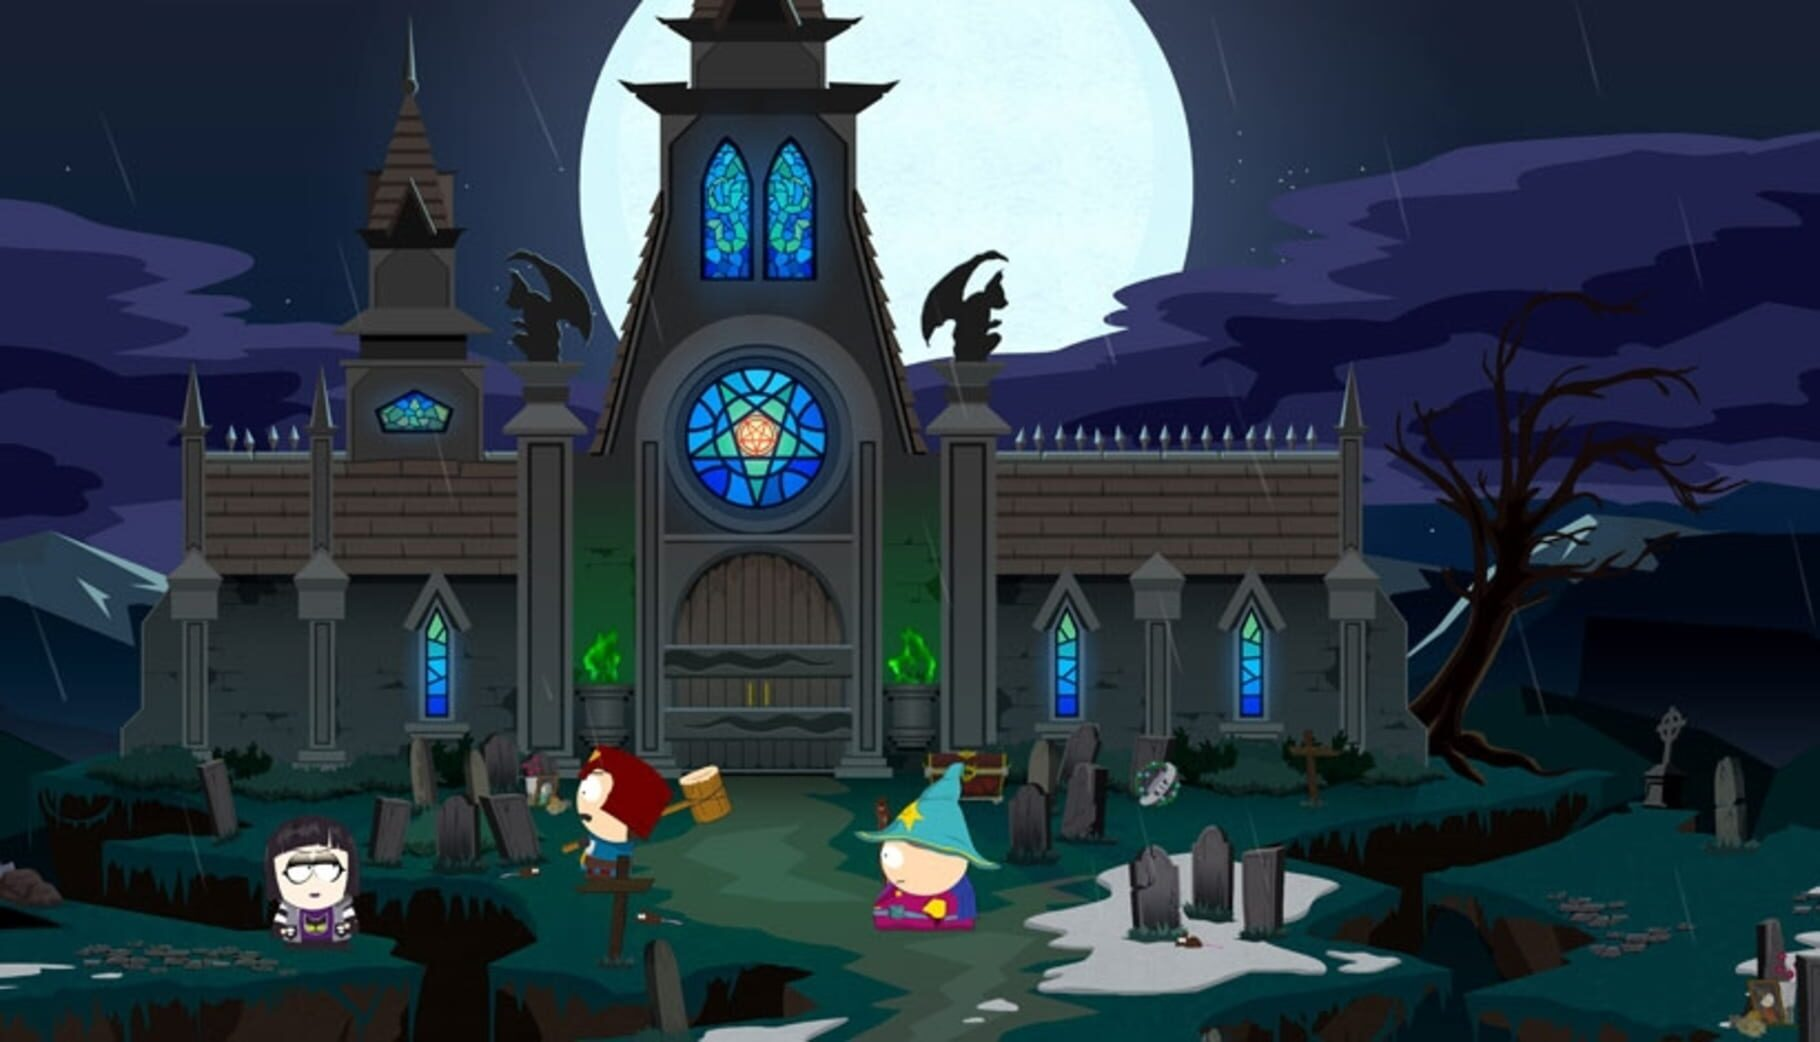 Gameplay Screenshot from South Park: The Stick of Truth